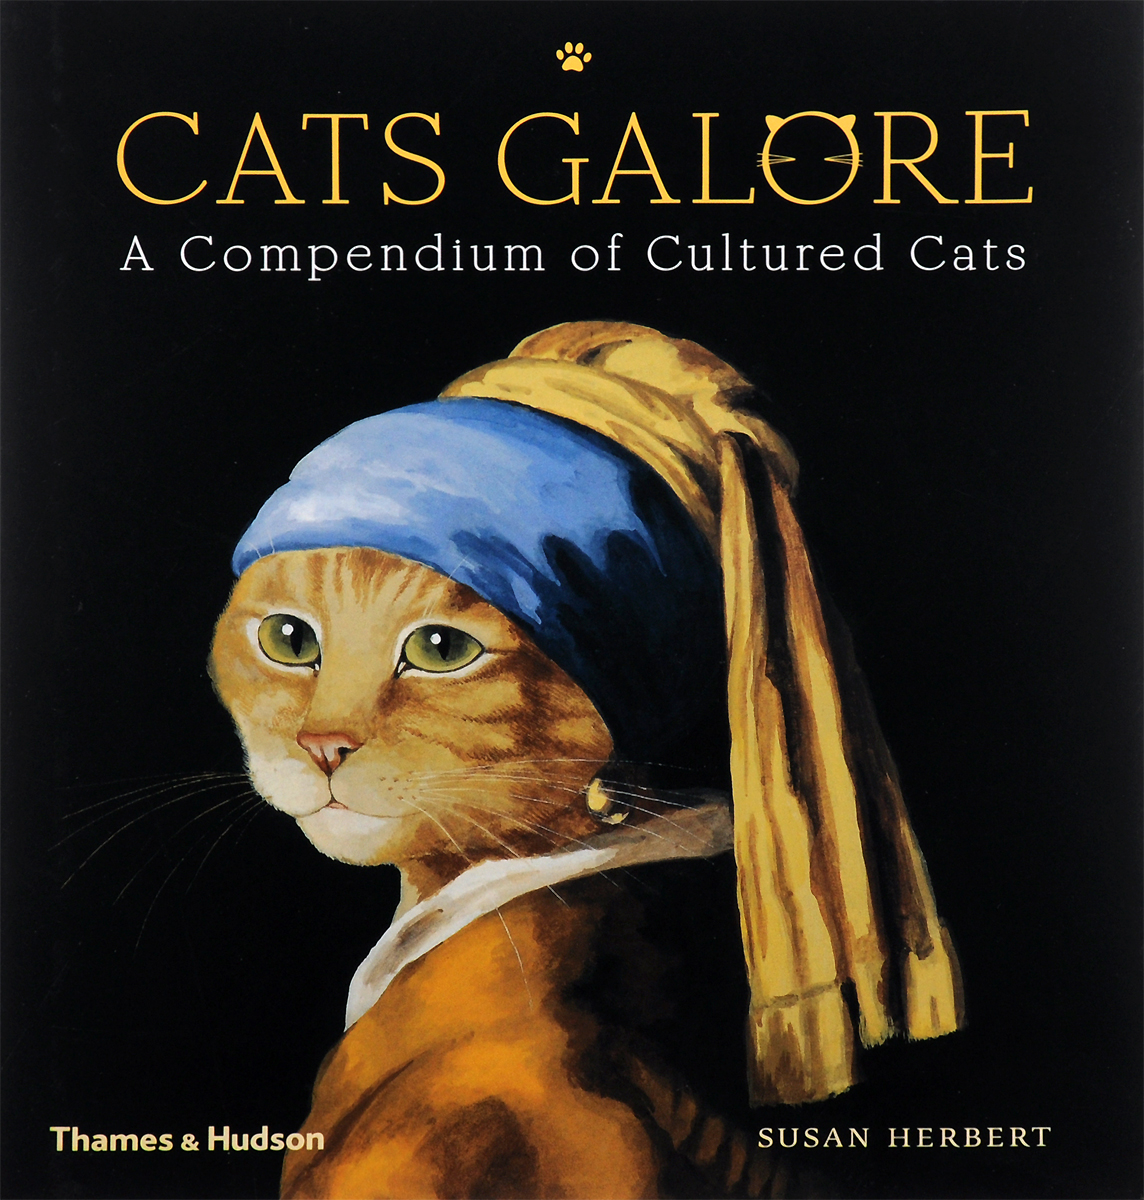 Cats Galore: A Compendium of Cultured Cats irresistible